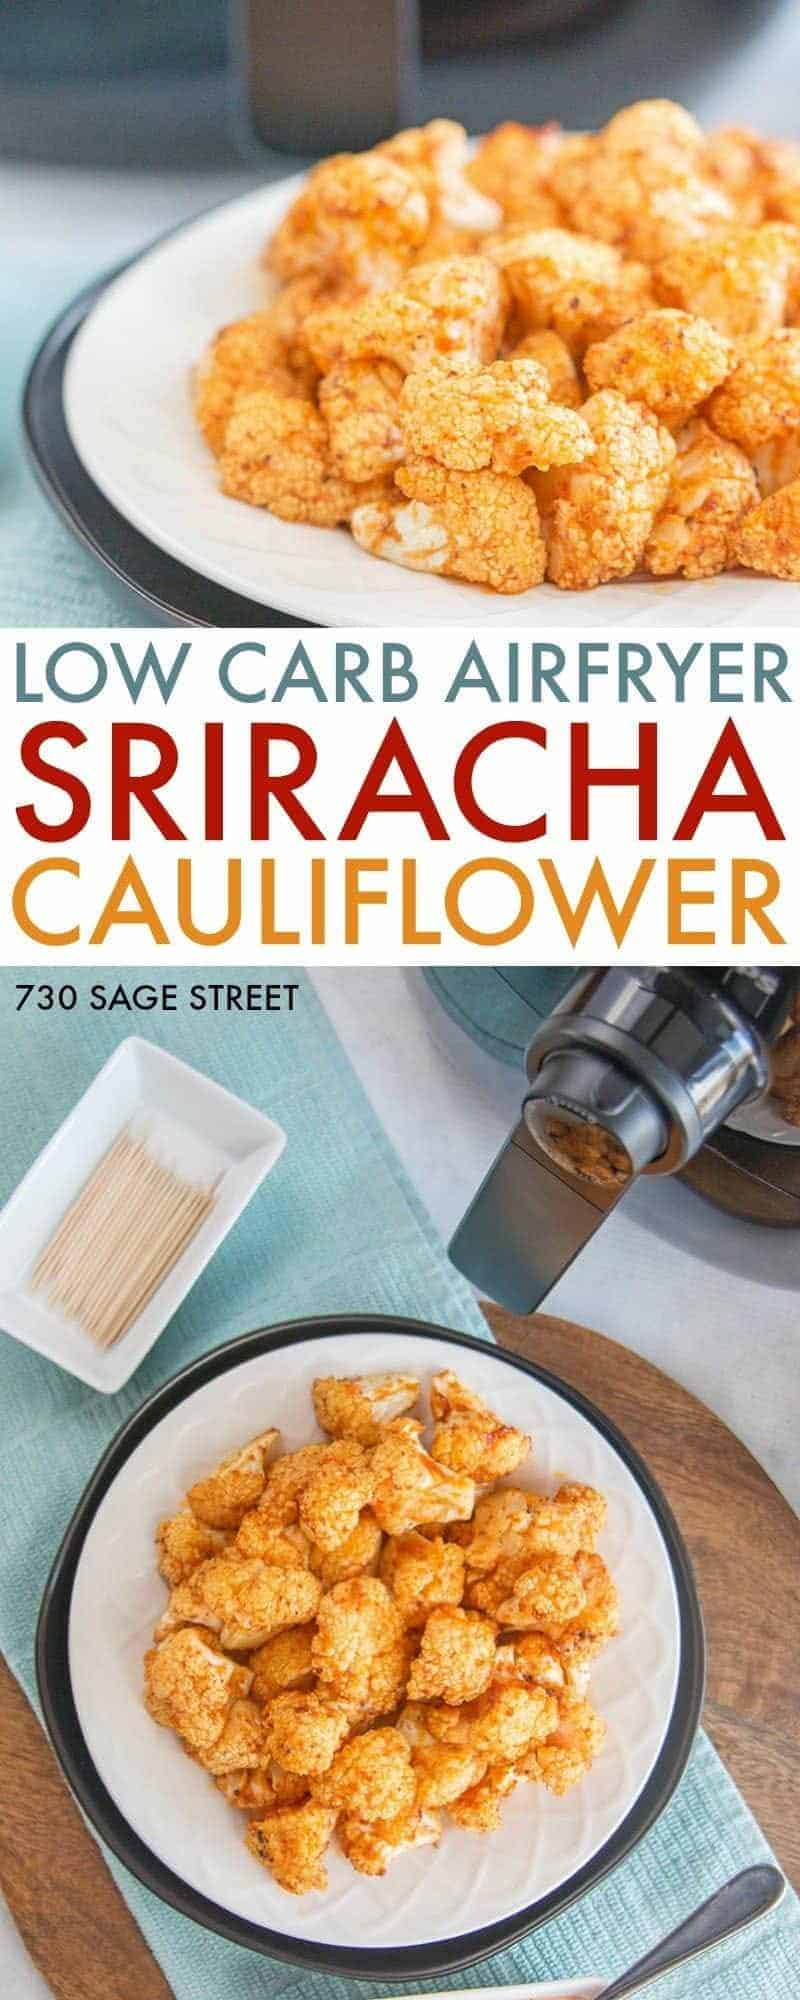 sriracha cauliflower airfryer recipe on a white plate with a blue background